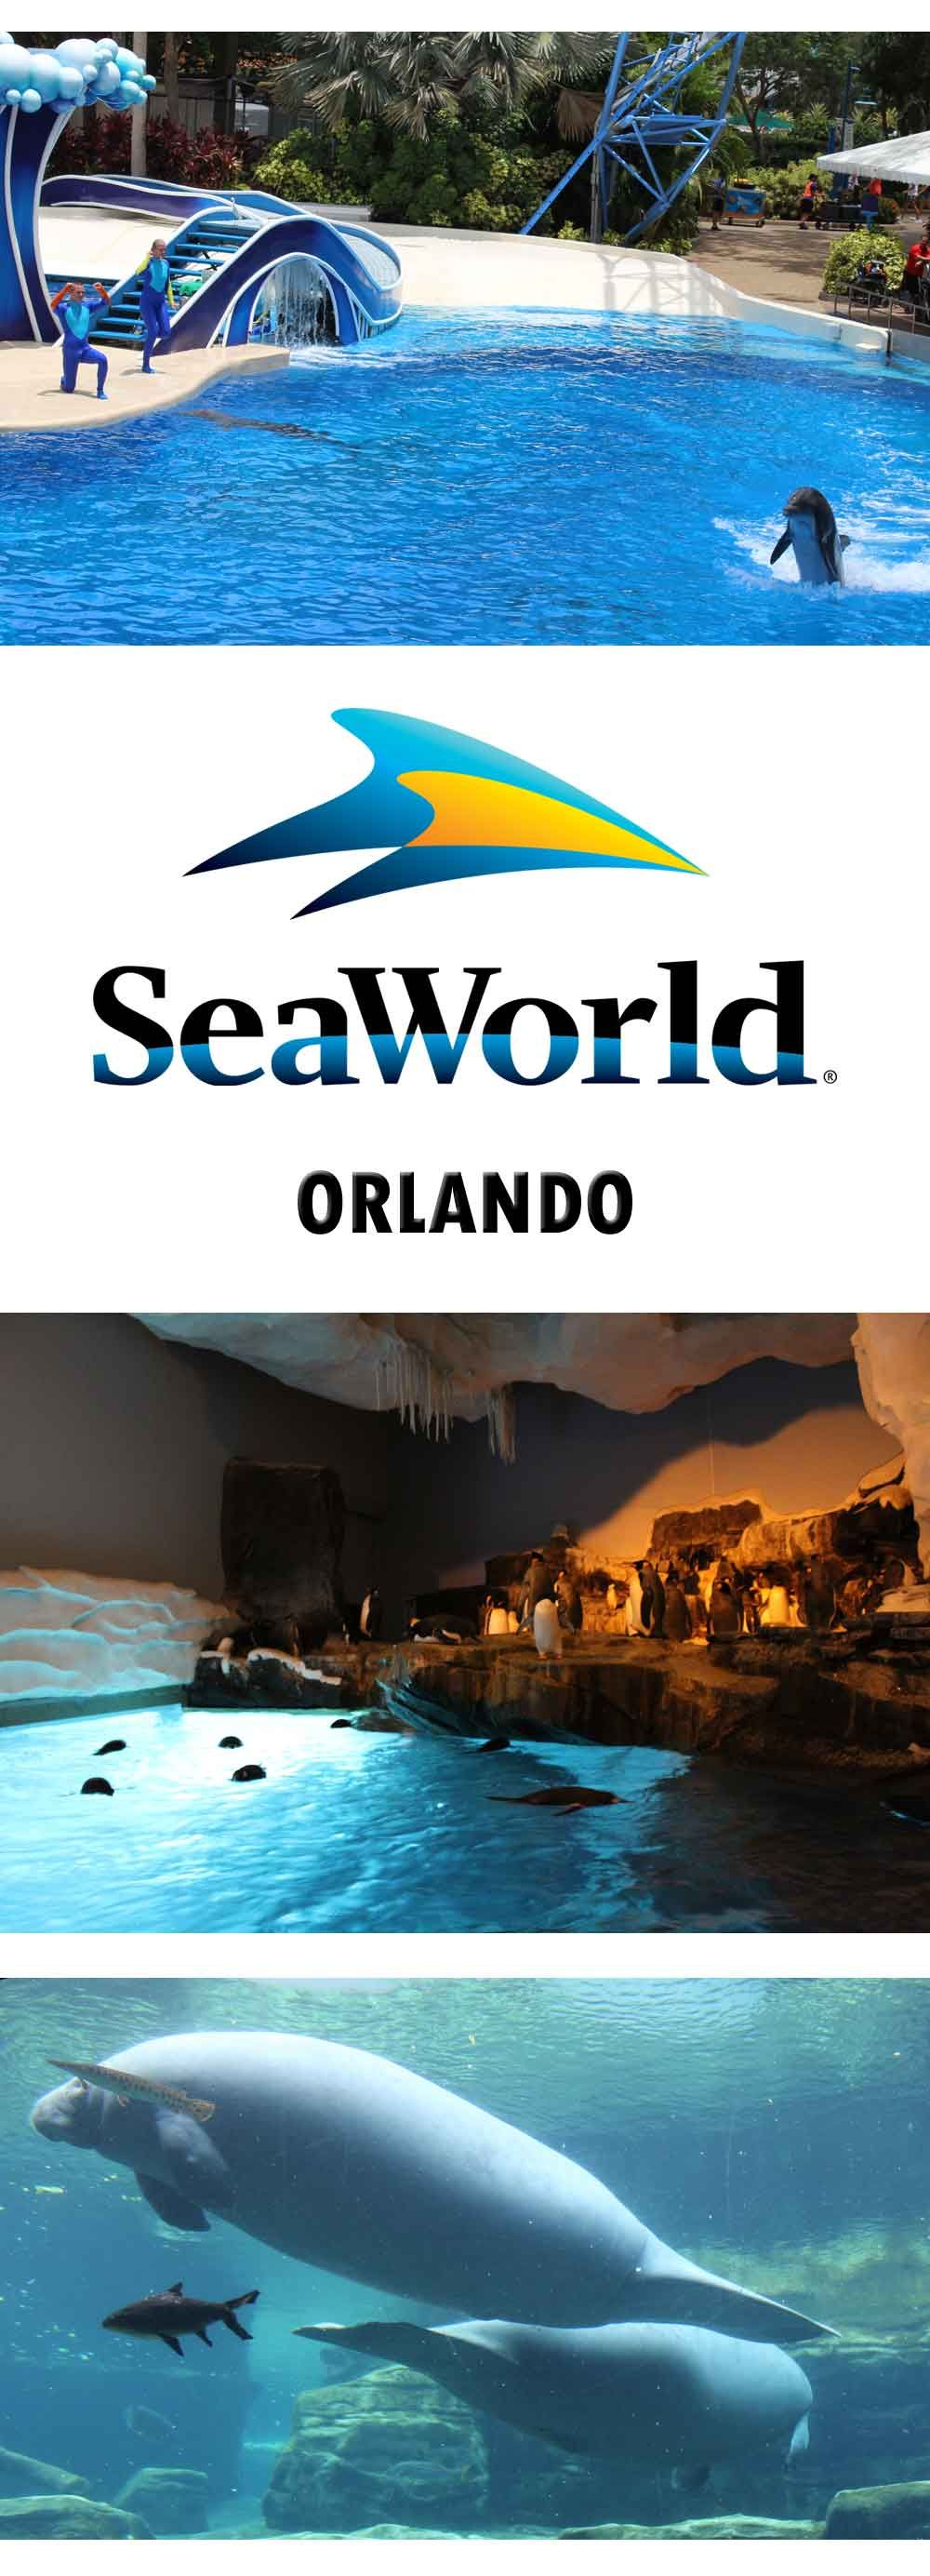 Meeting the Dolphins at SeaWorld, Orlando, Florida is part of Seaworld Dolphin Cove Seaworld Orlando Park To Planet - Seaworld, Orlando Florida is a fabulous family friendly theme park  There are shows, rides and animal encounters  Dolphins, Orcas, Turtles and Manatees,